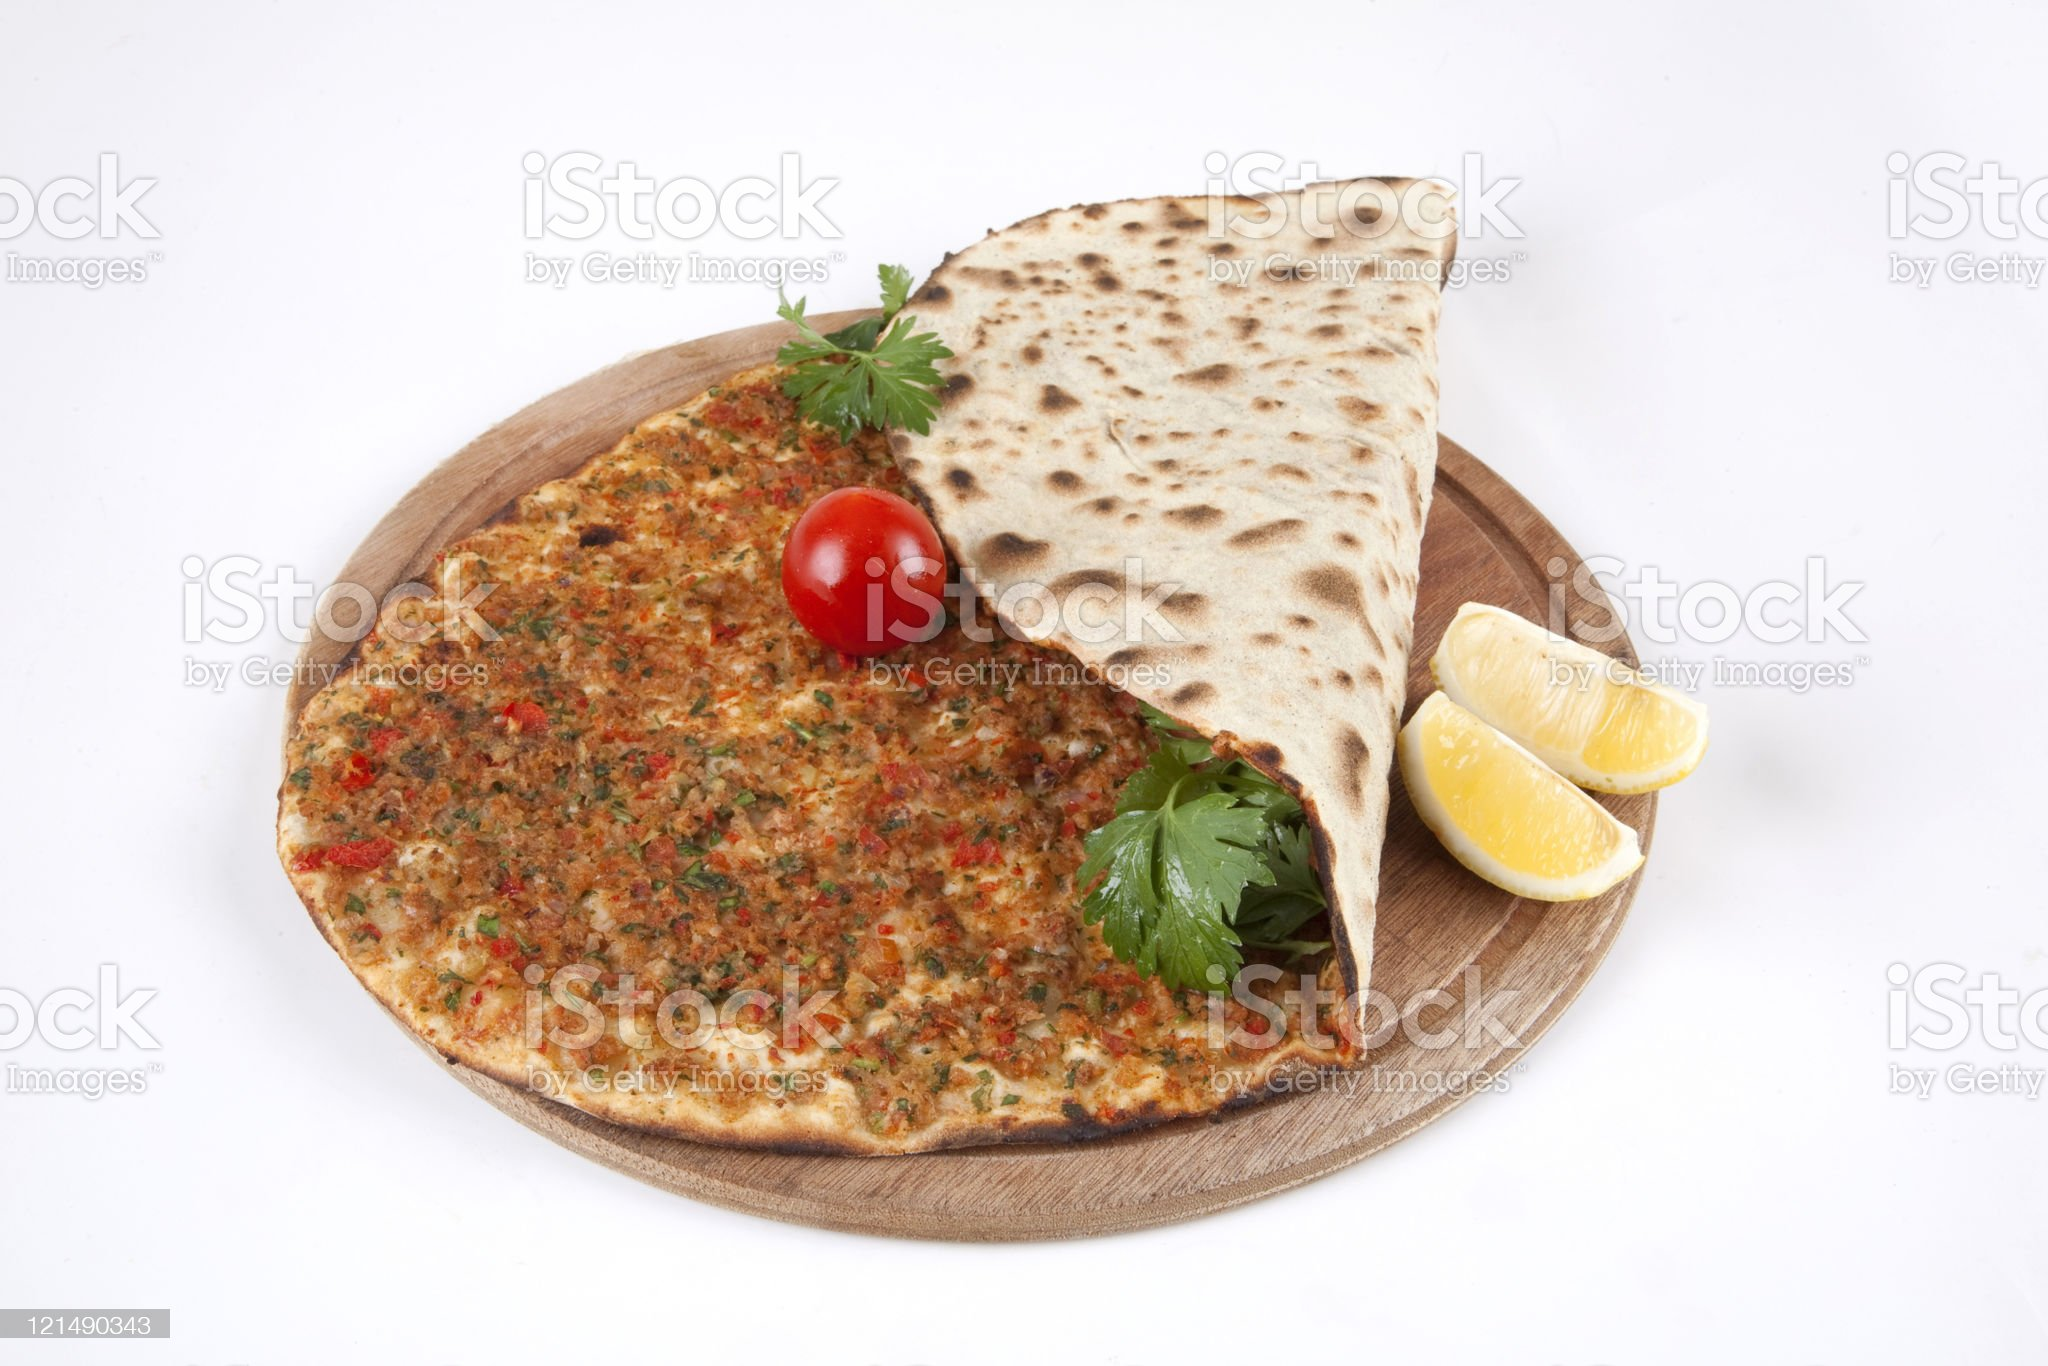 Turkish pizza - Lahmacun royalty-free stock photo